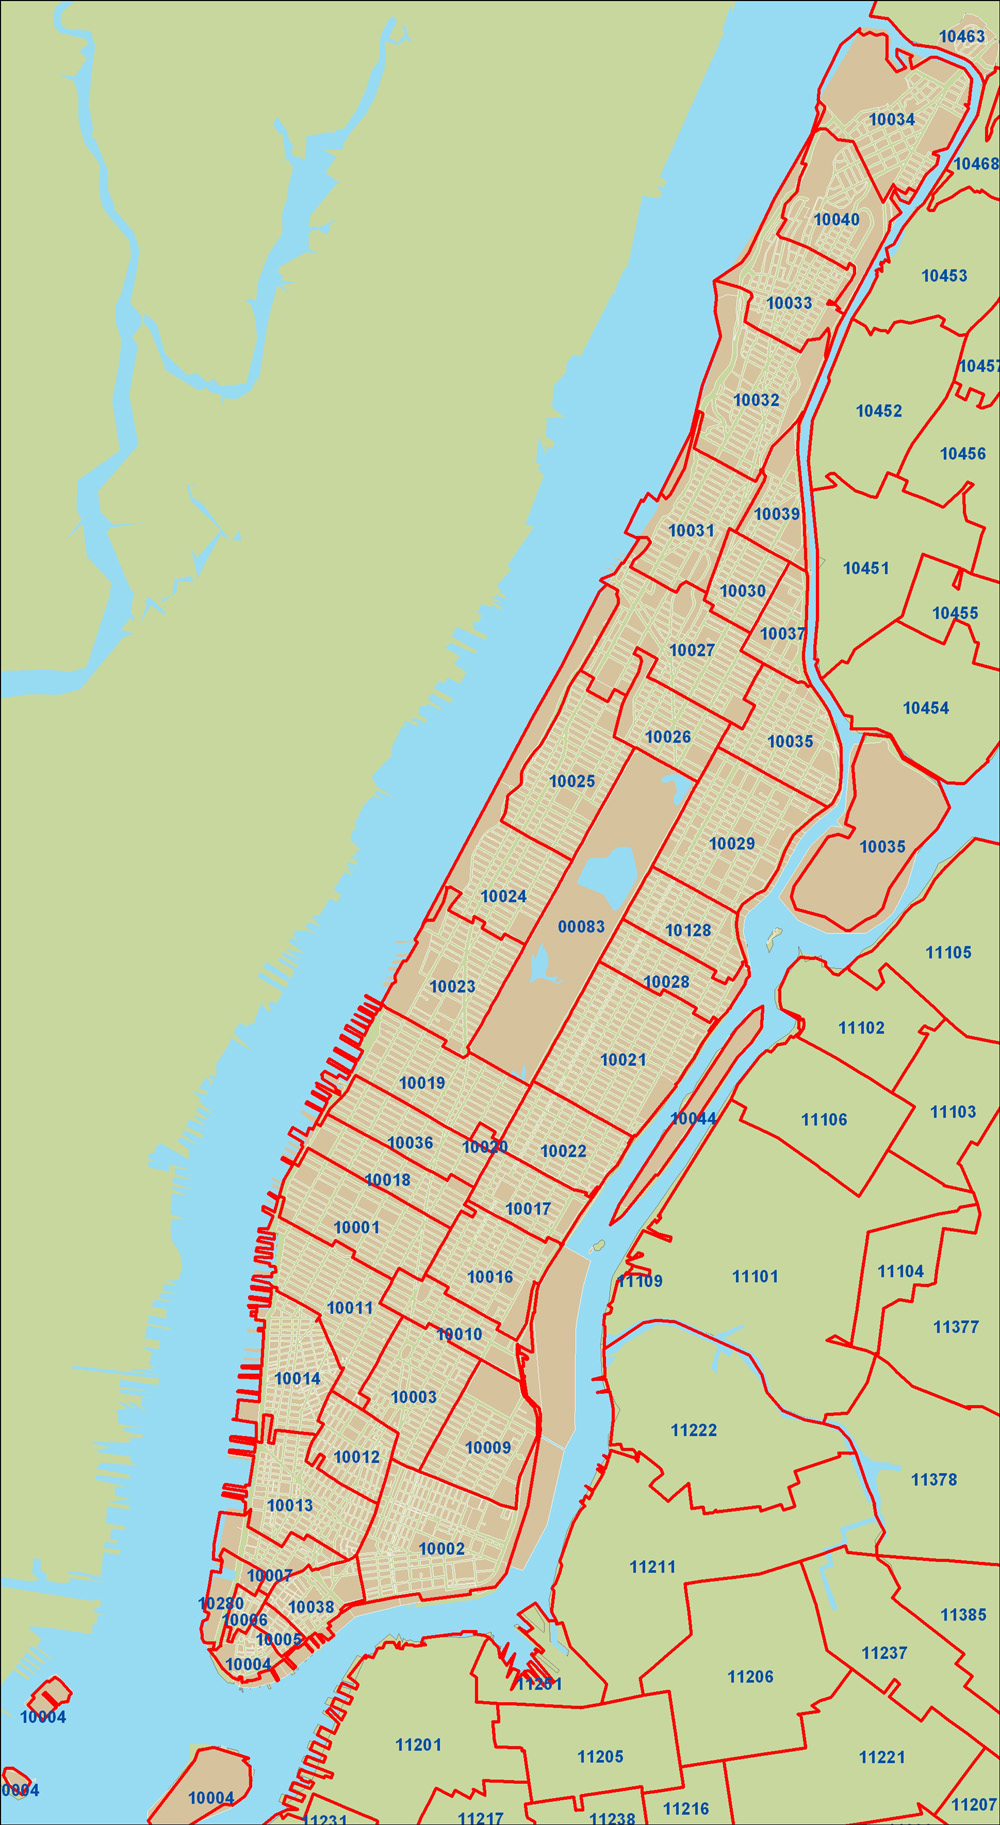 Nyc Zip Codes Map Nyc Zip Codes Map | Zip Code MAP Nyc Zip Codes Map